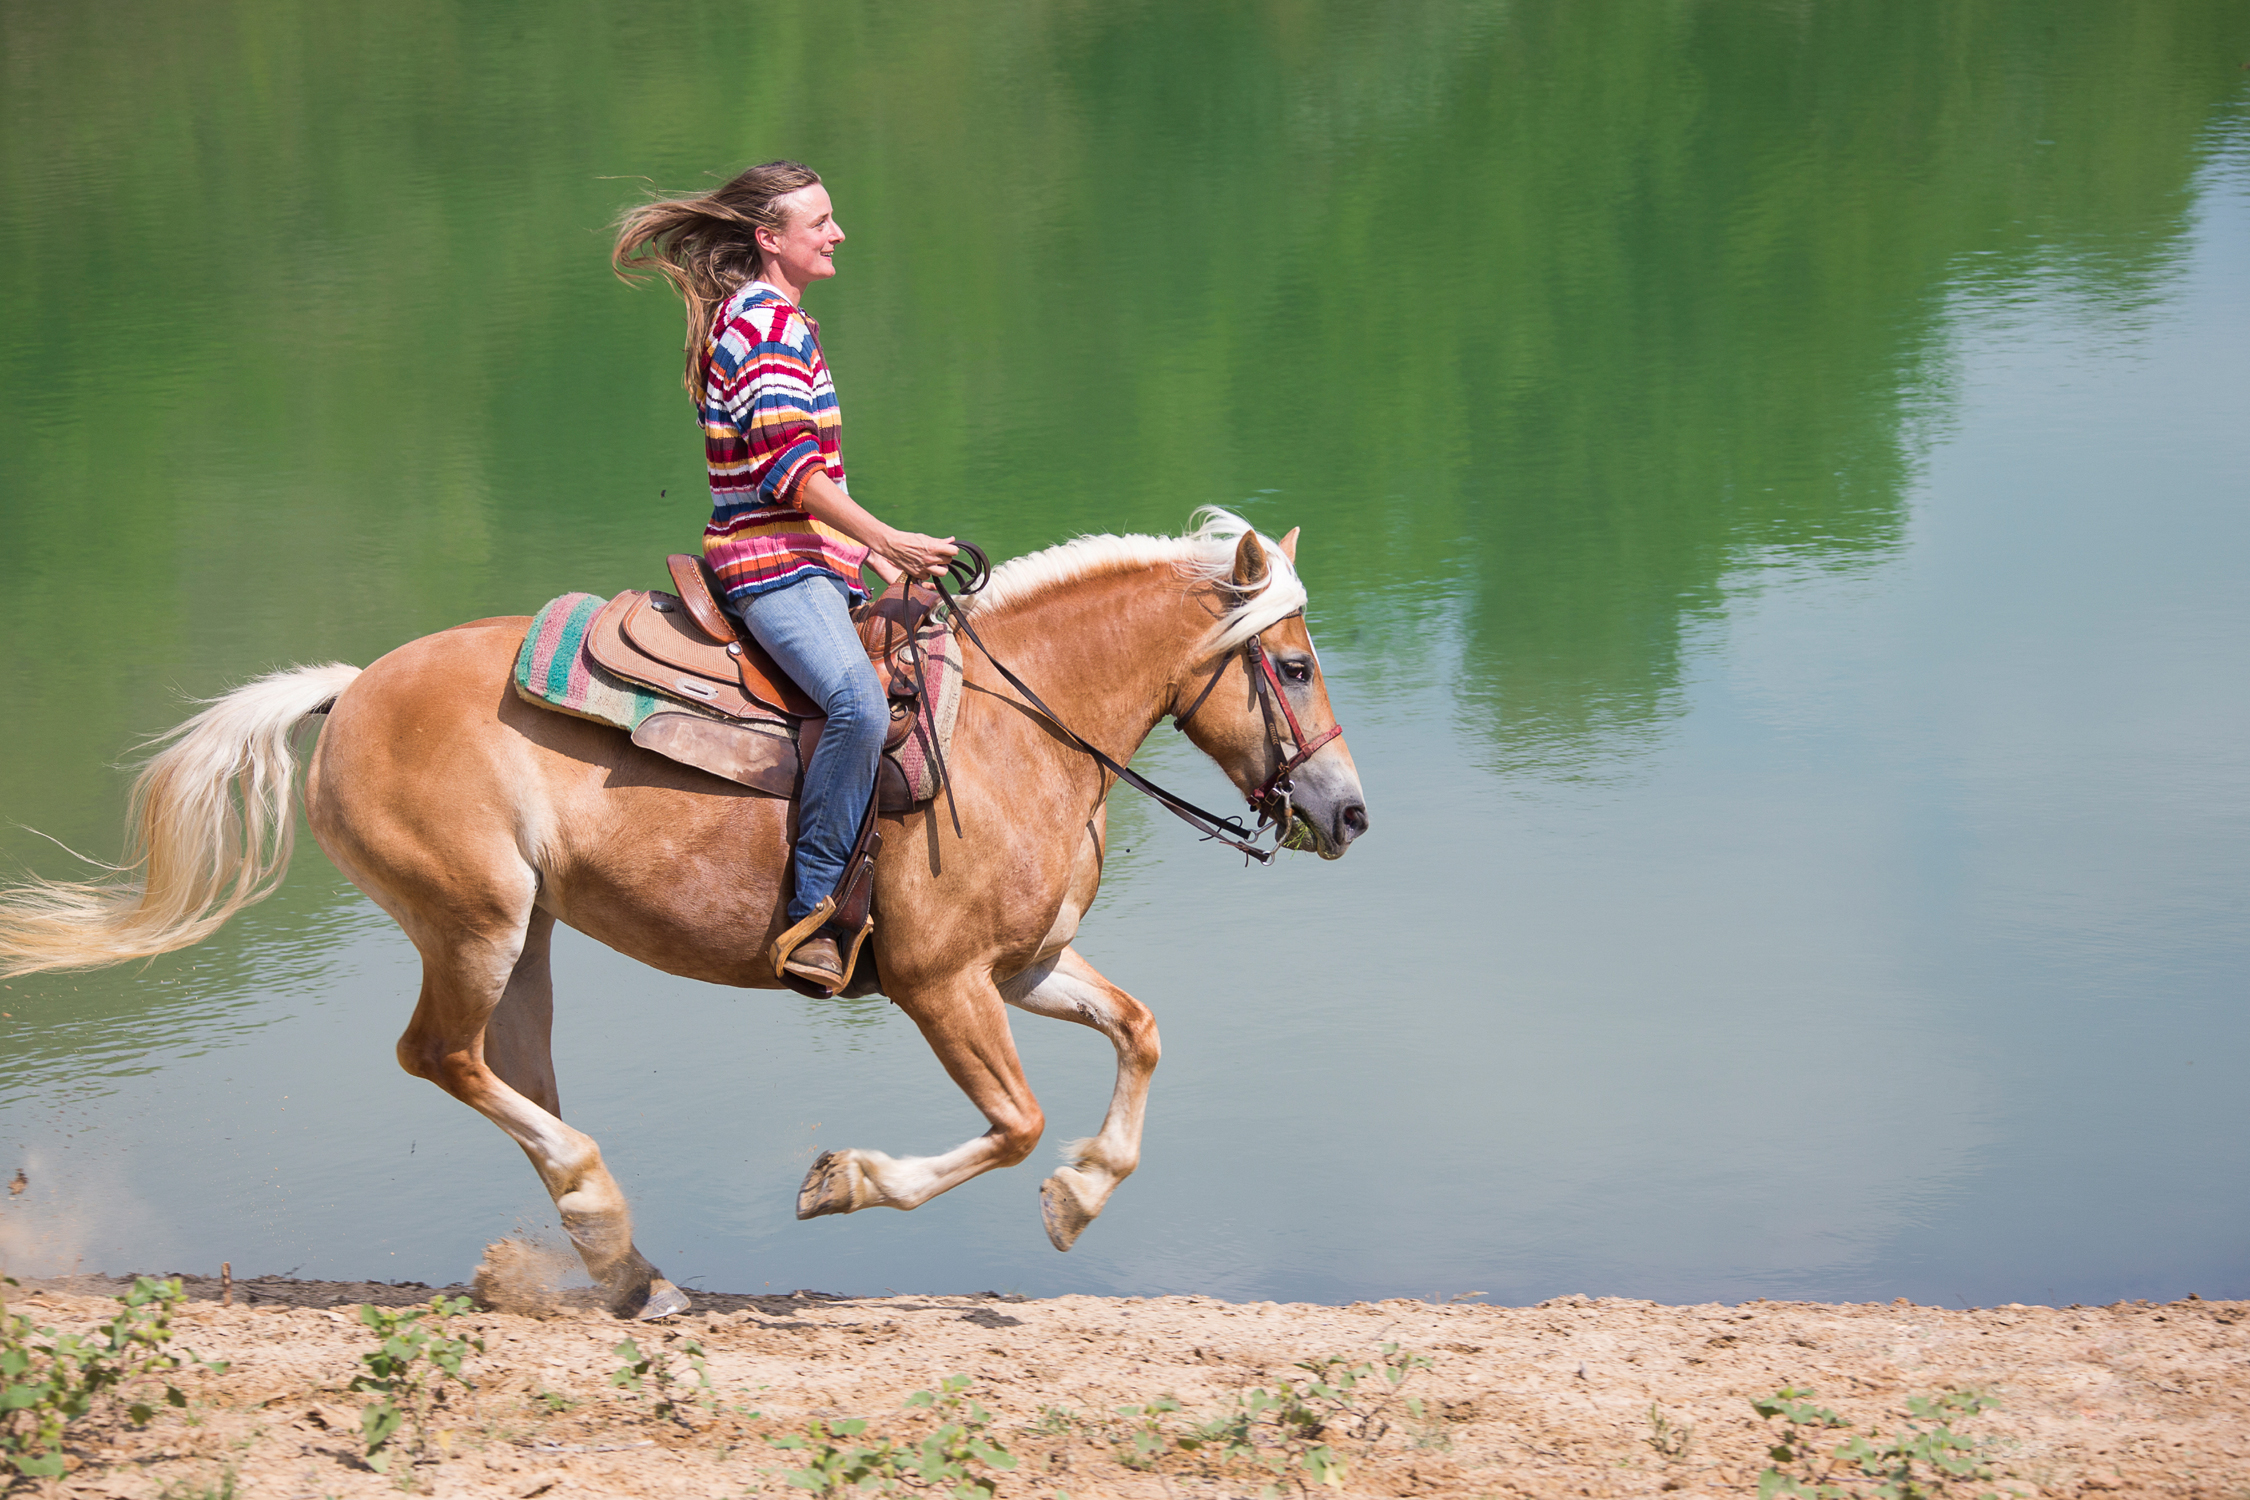 13 Horse Riding HD Wallpapers Background Images 2250x1500